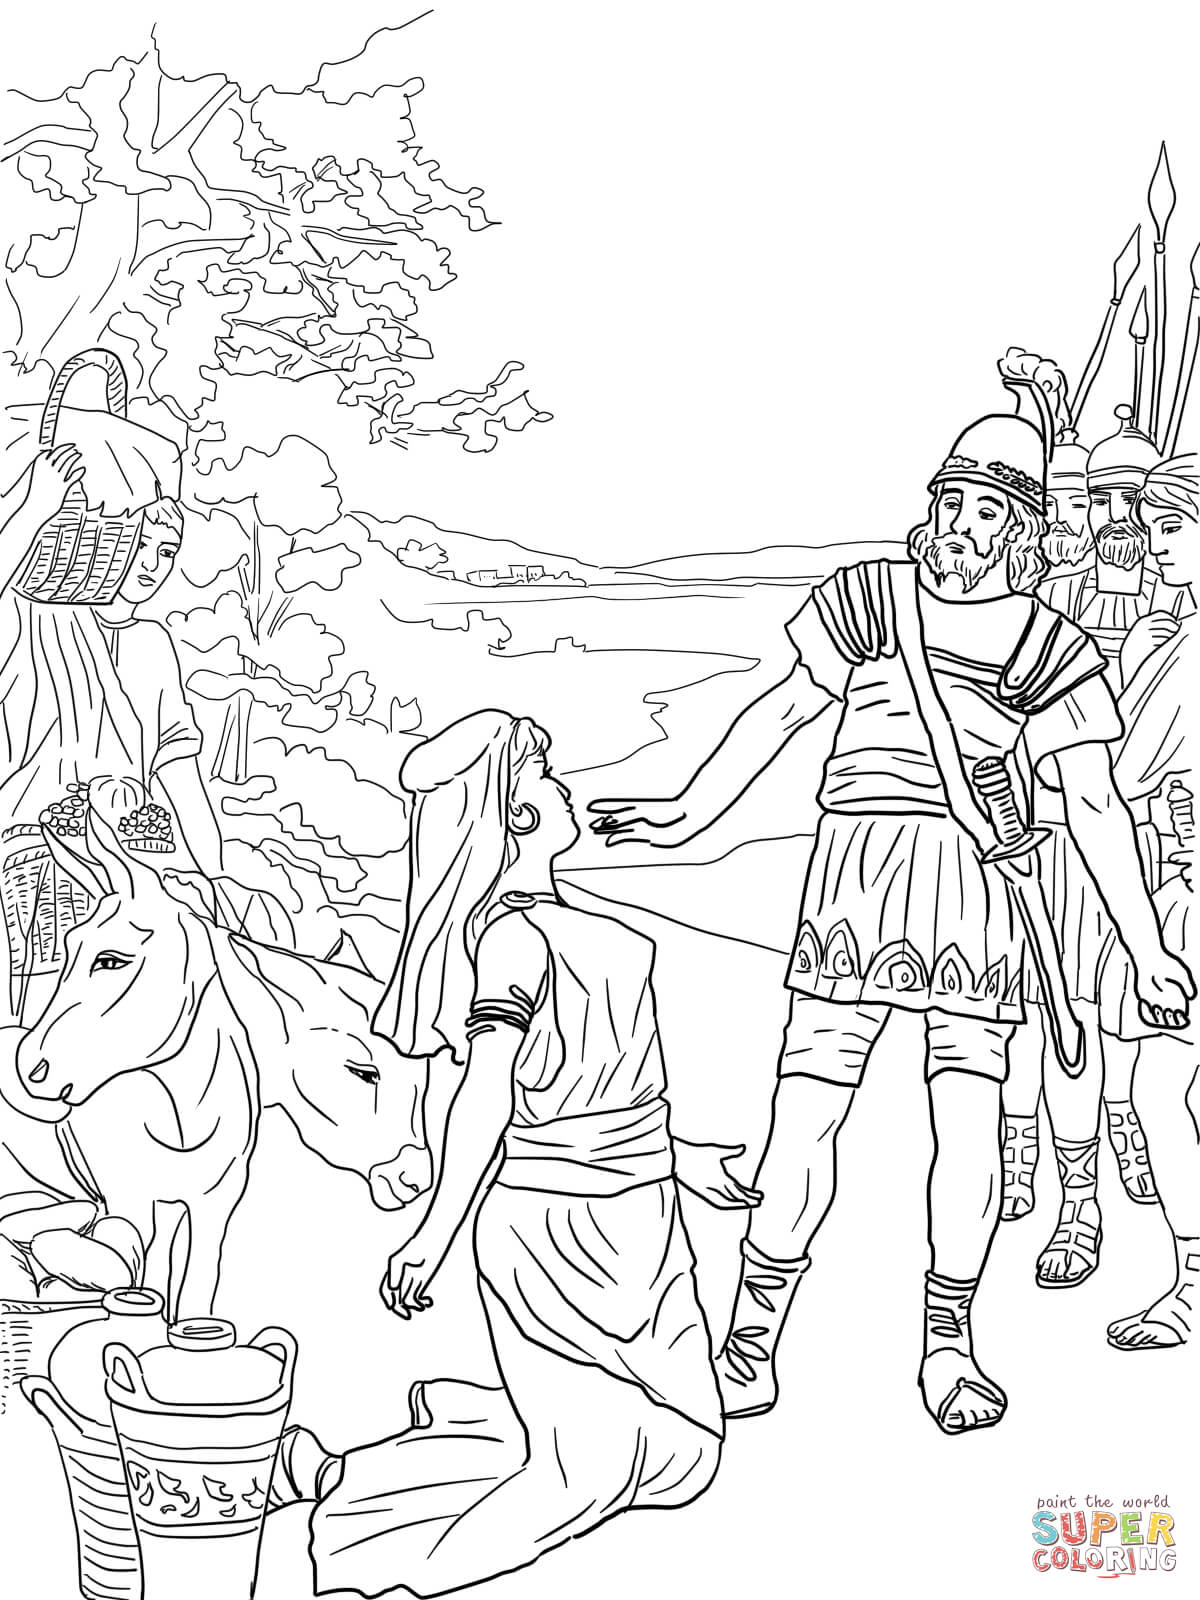 Saul Tries To Kill David Coloring Pages Printable Coloring